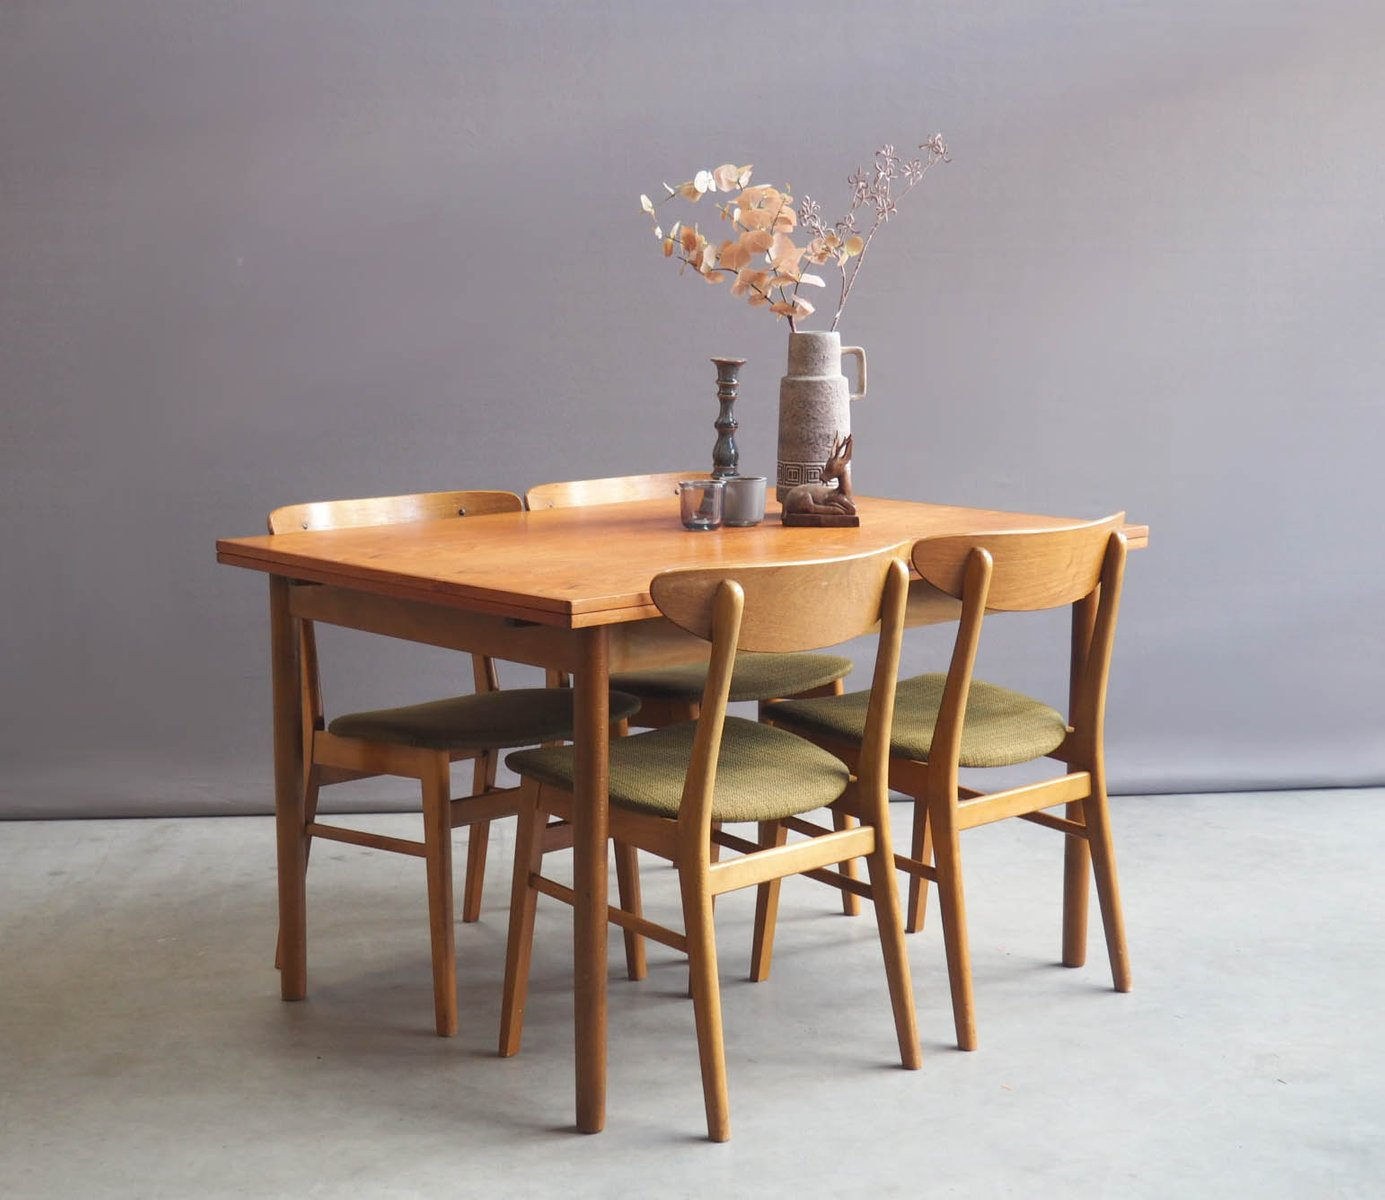 vintage dining table with four chairs from farstrup m bler for vintage dining table with four chairs from farstrup m bler